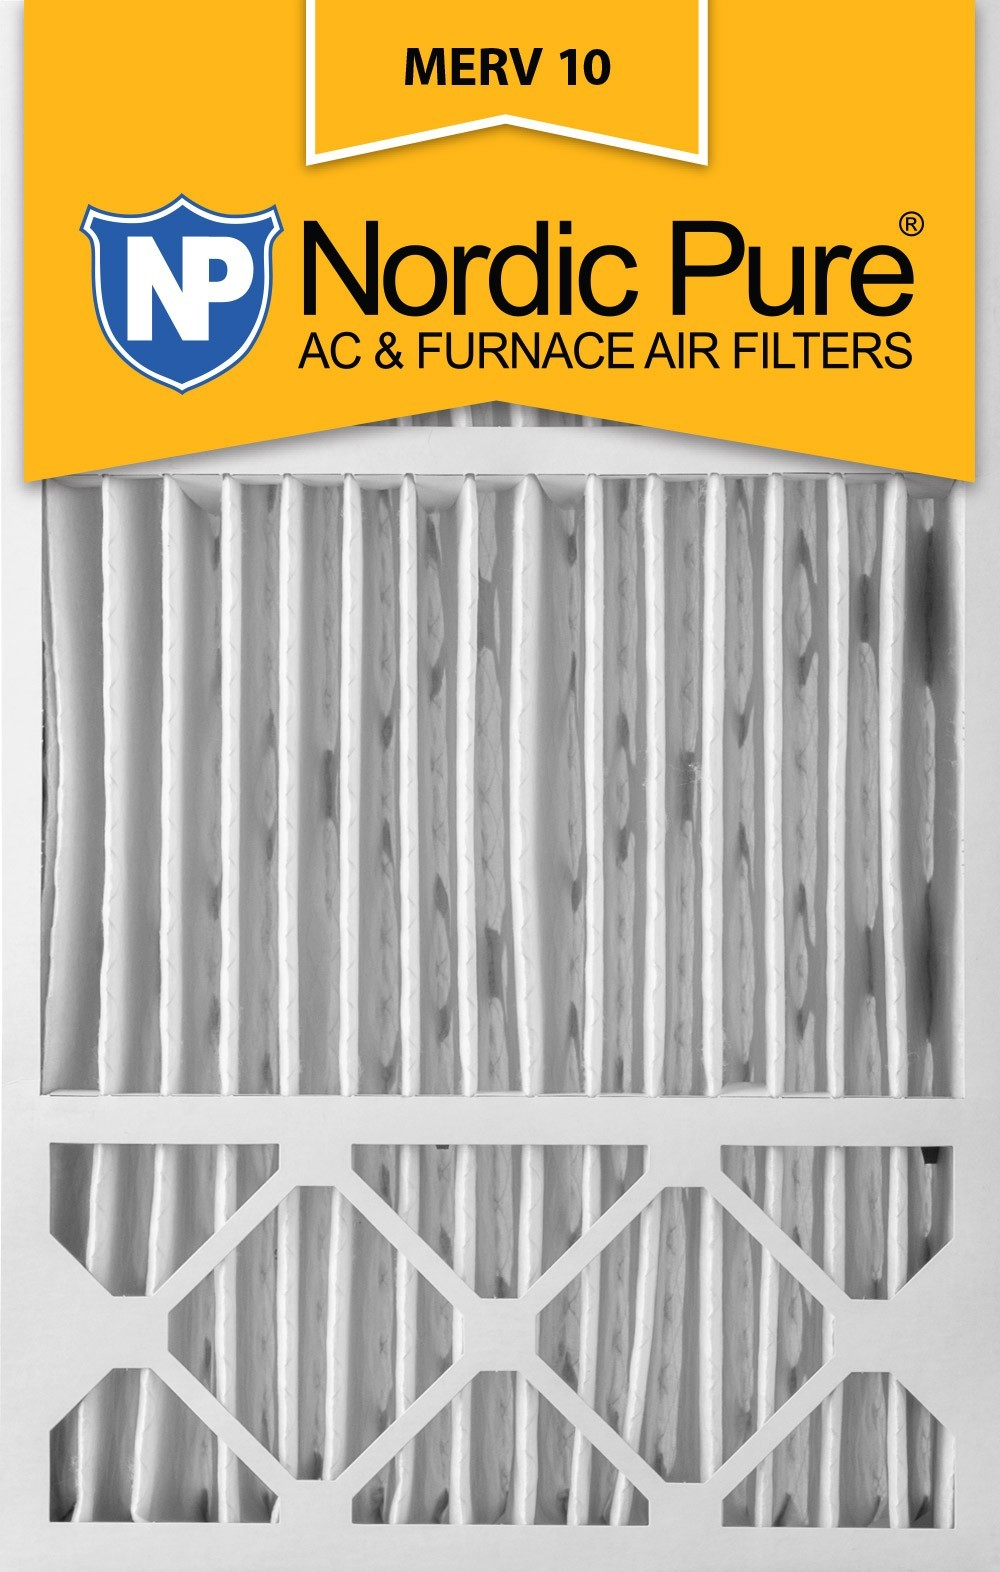 Nordic Pure MERV 10 5-in. Pleated Furnace Filters no6665